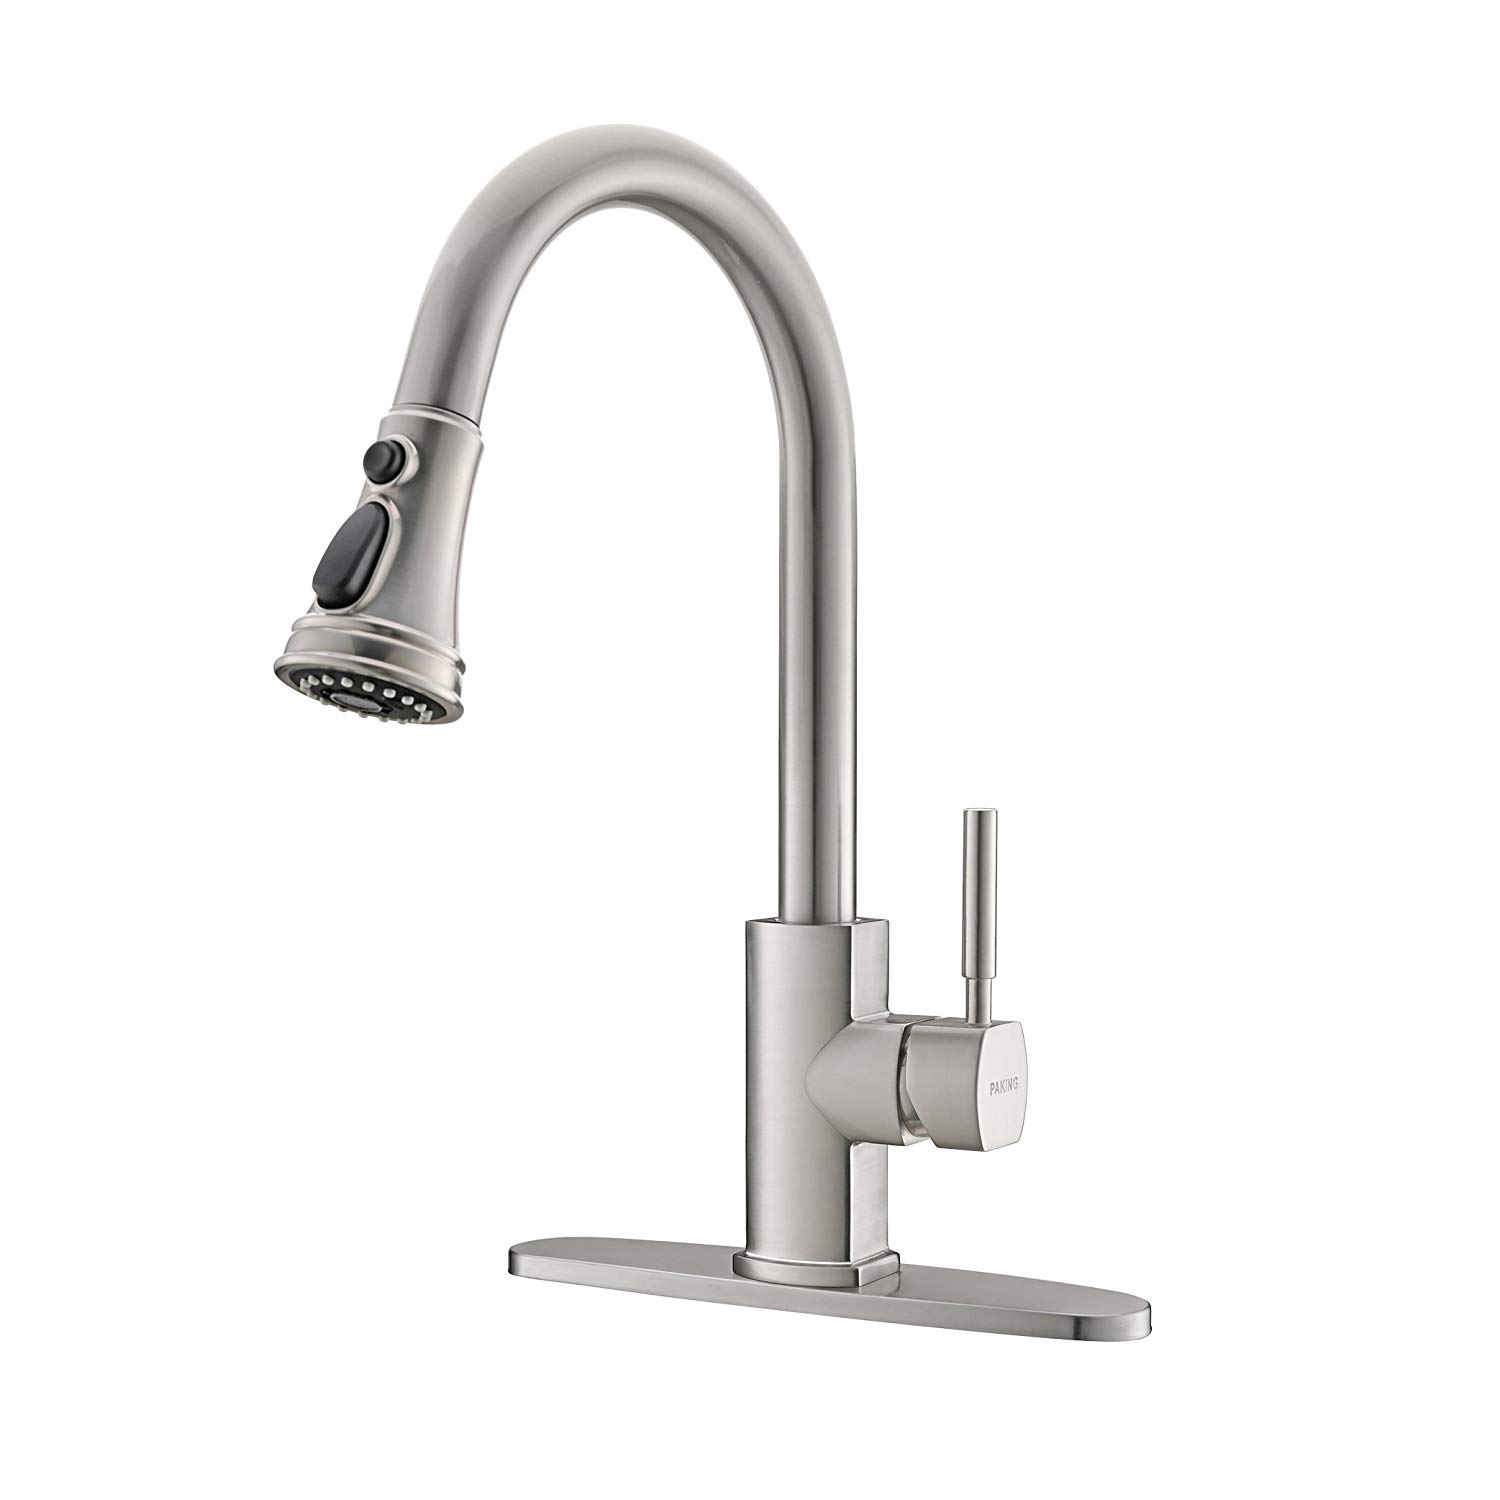 PAKING Kitchen Sink Faucet